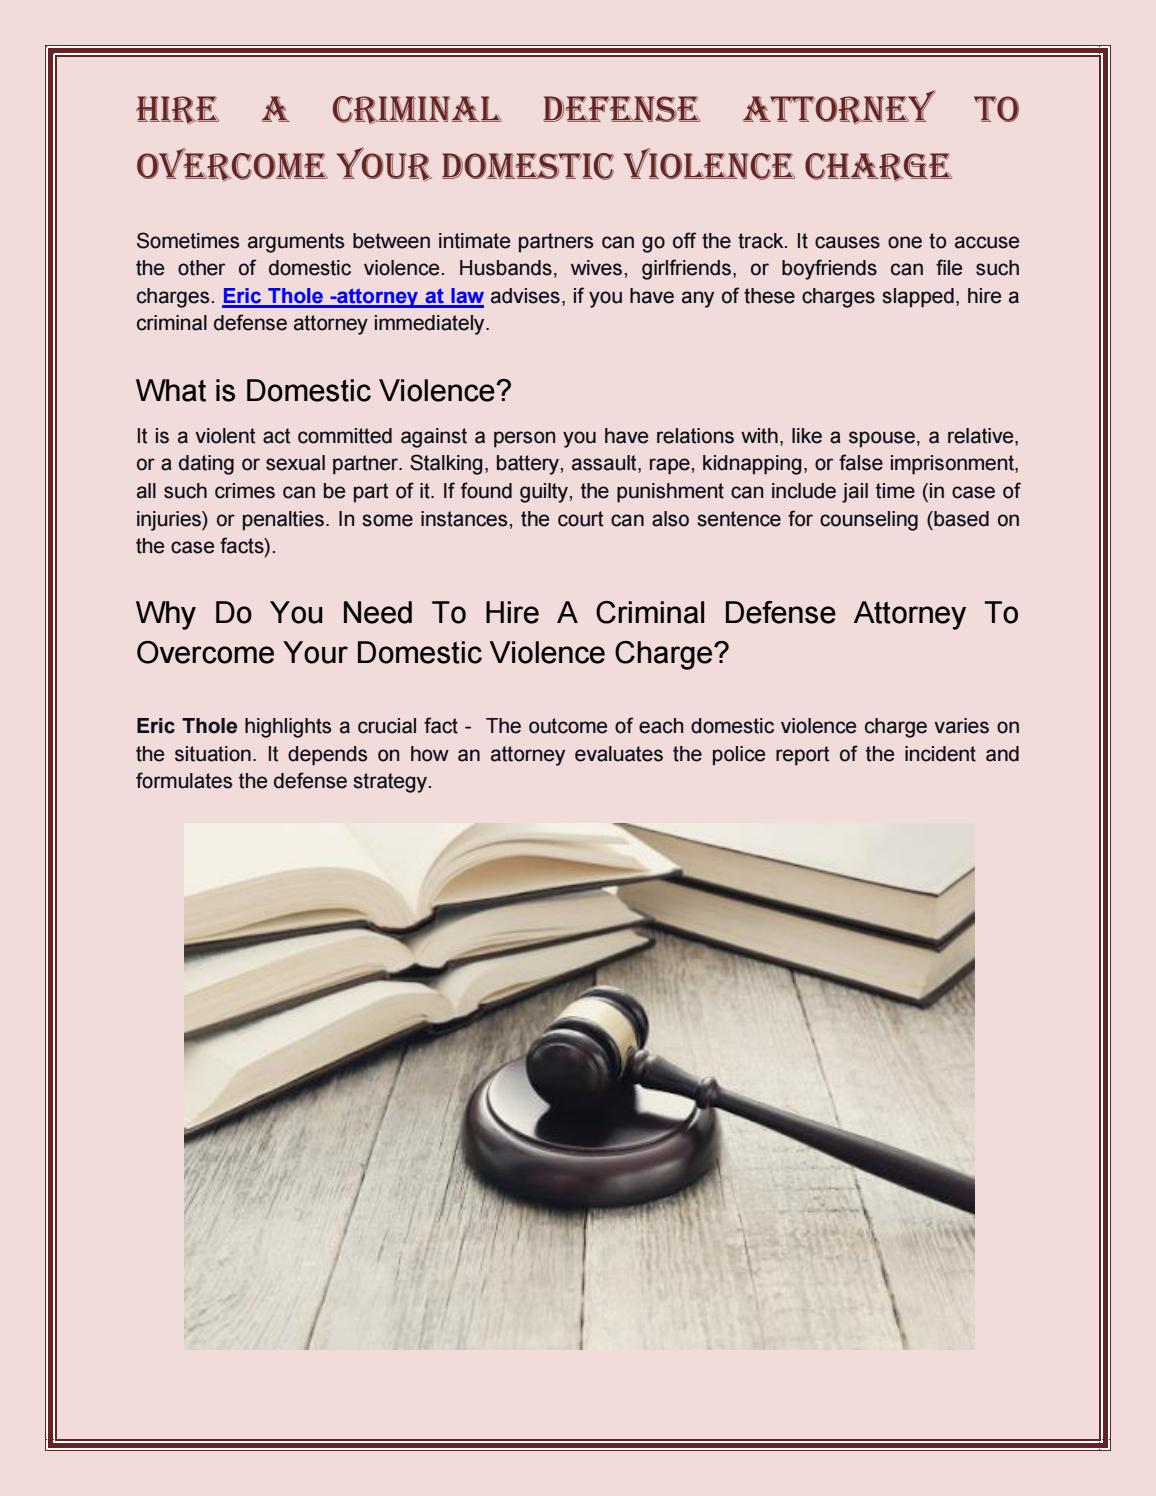 Hire a Criminal Defense Attorney to Overcome Your Domestic Violence Charge